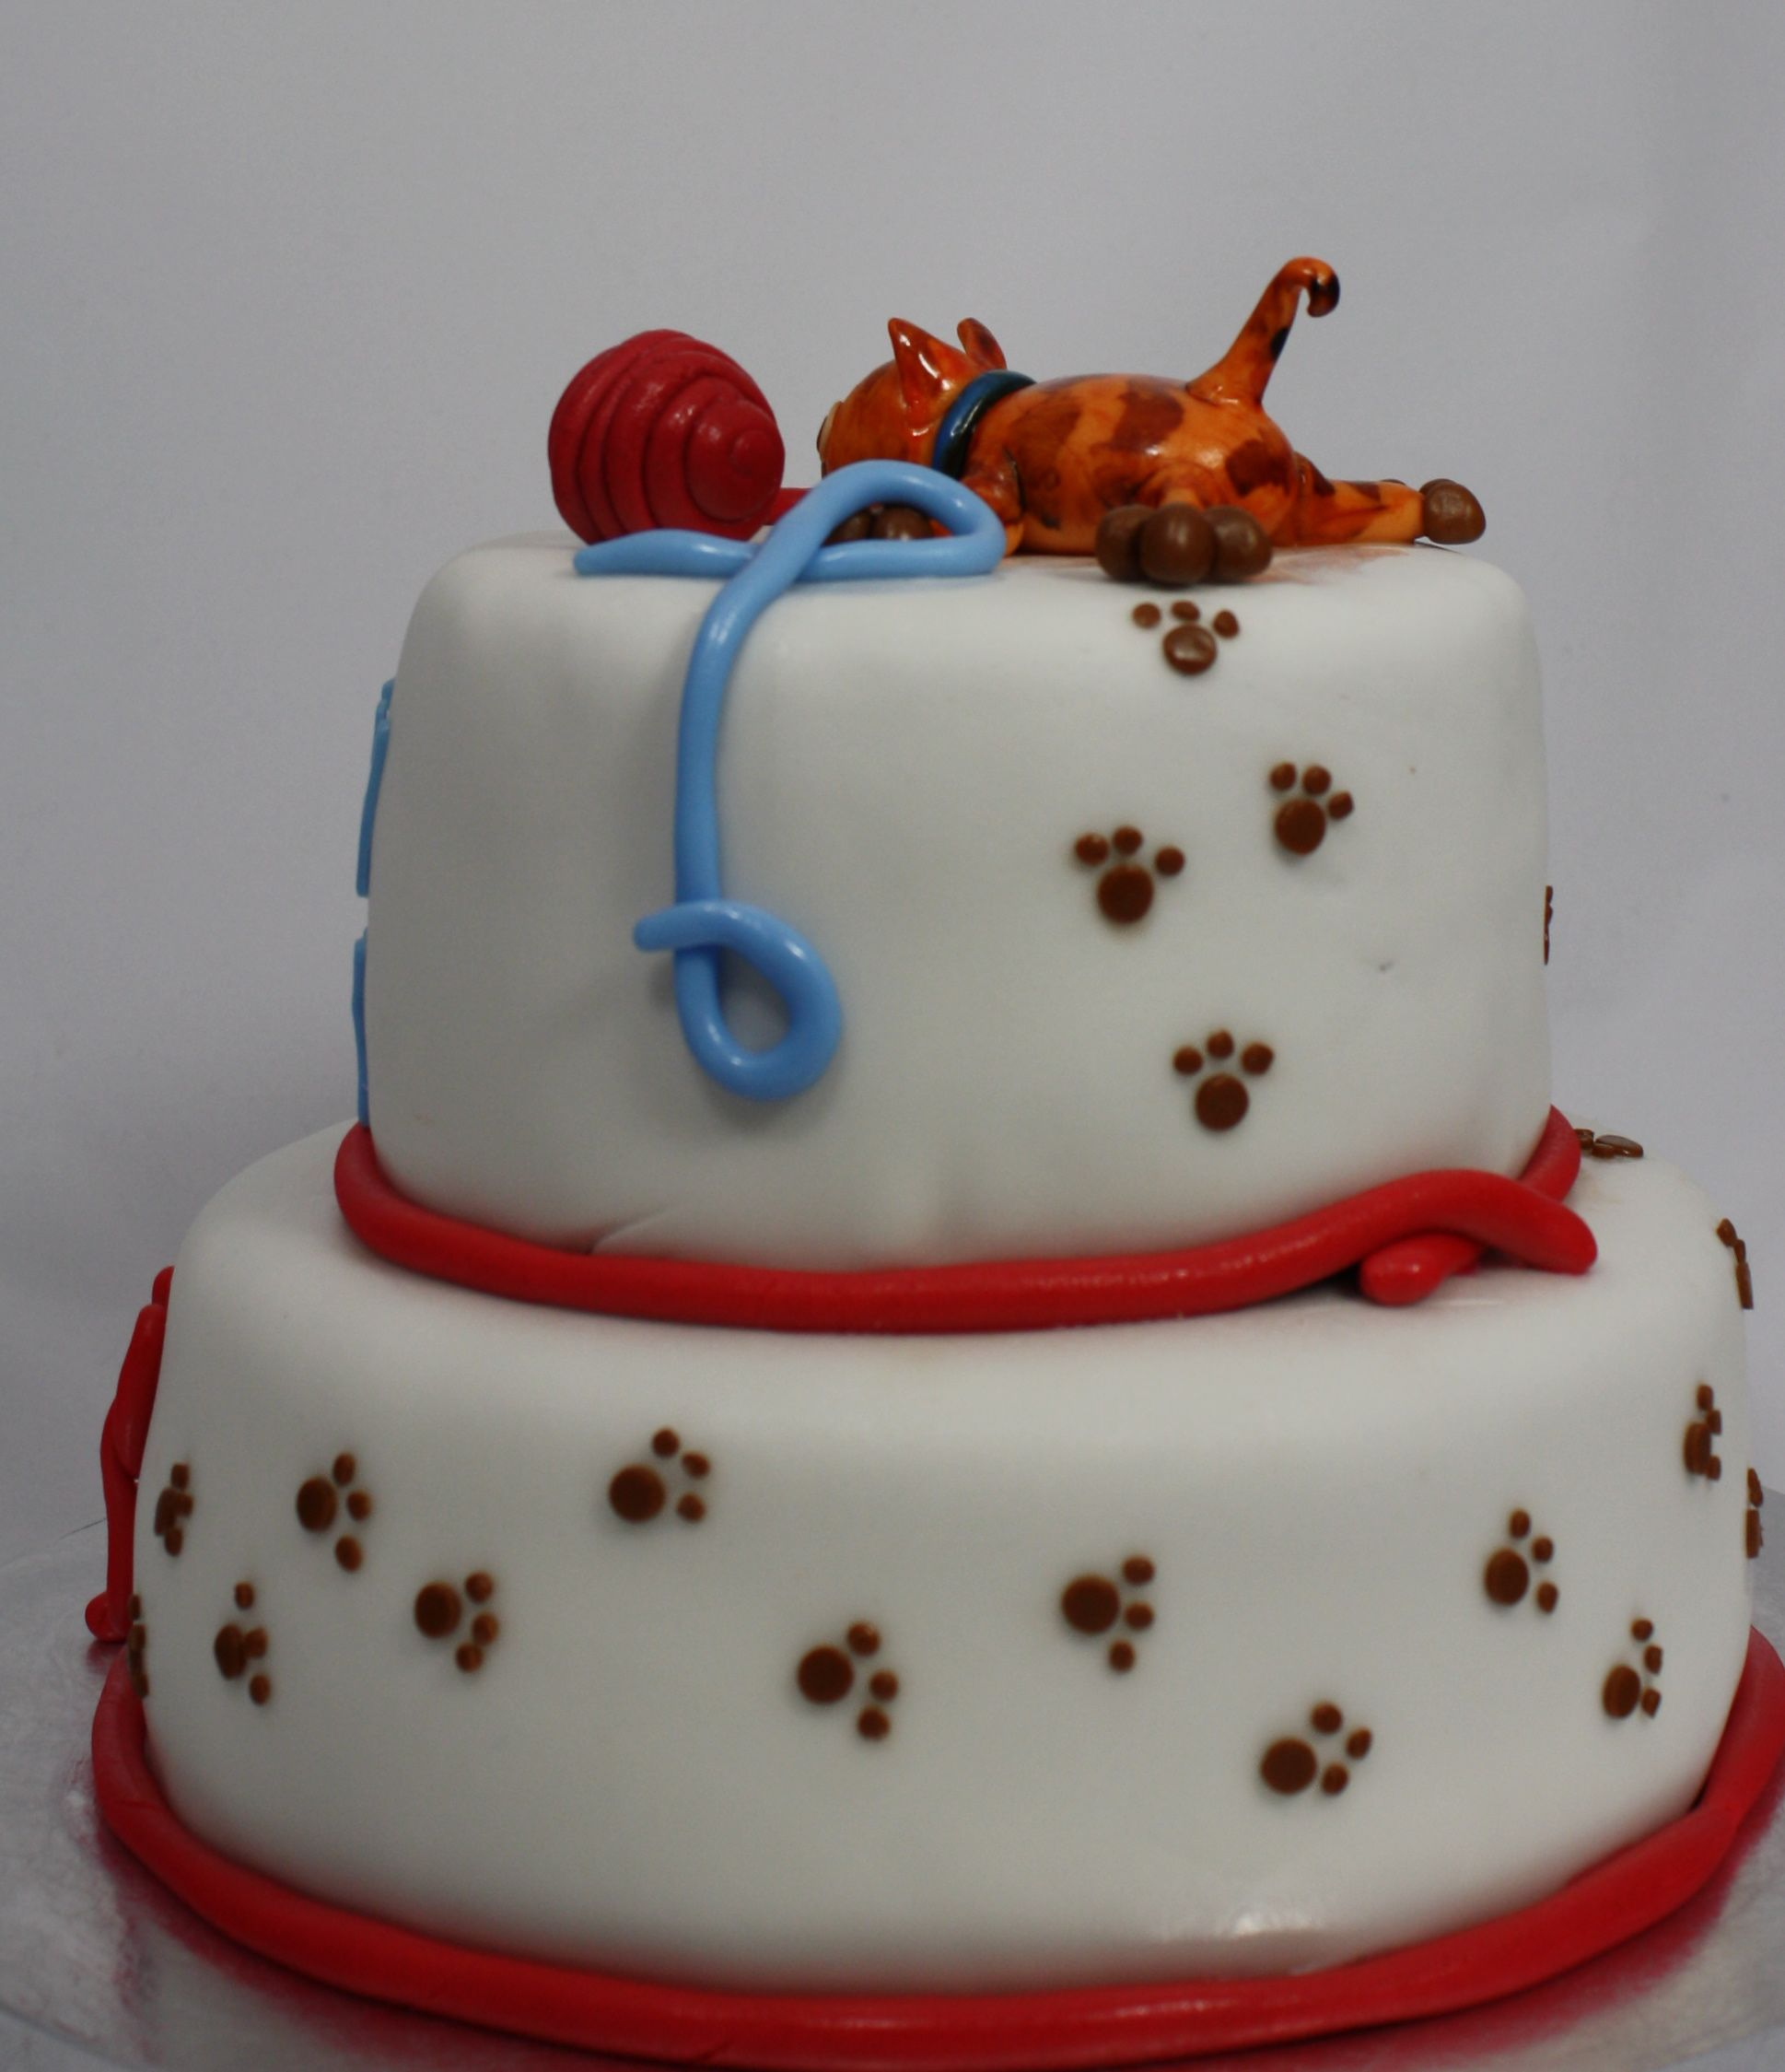 Natalie s creative cakes animal cakes - Cat Sweets By Natalie Kay Birthday Cake With Cats